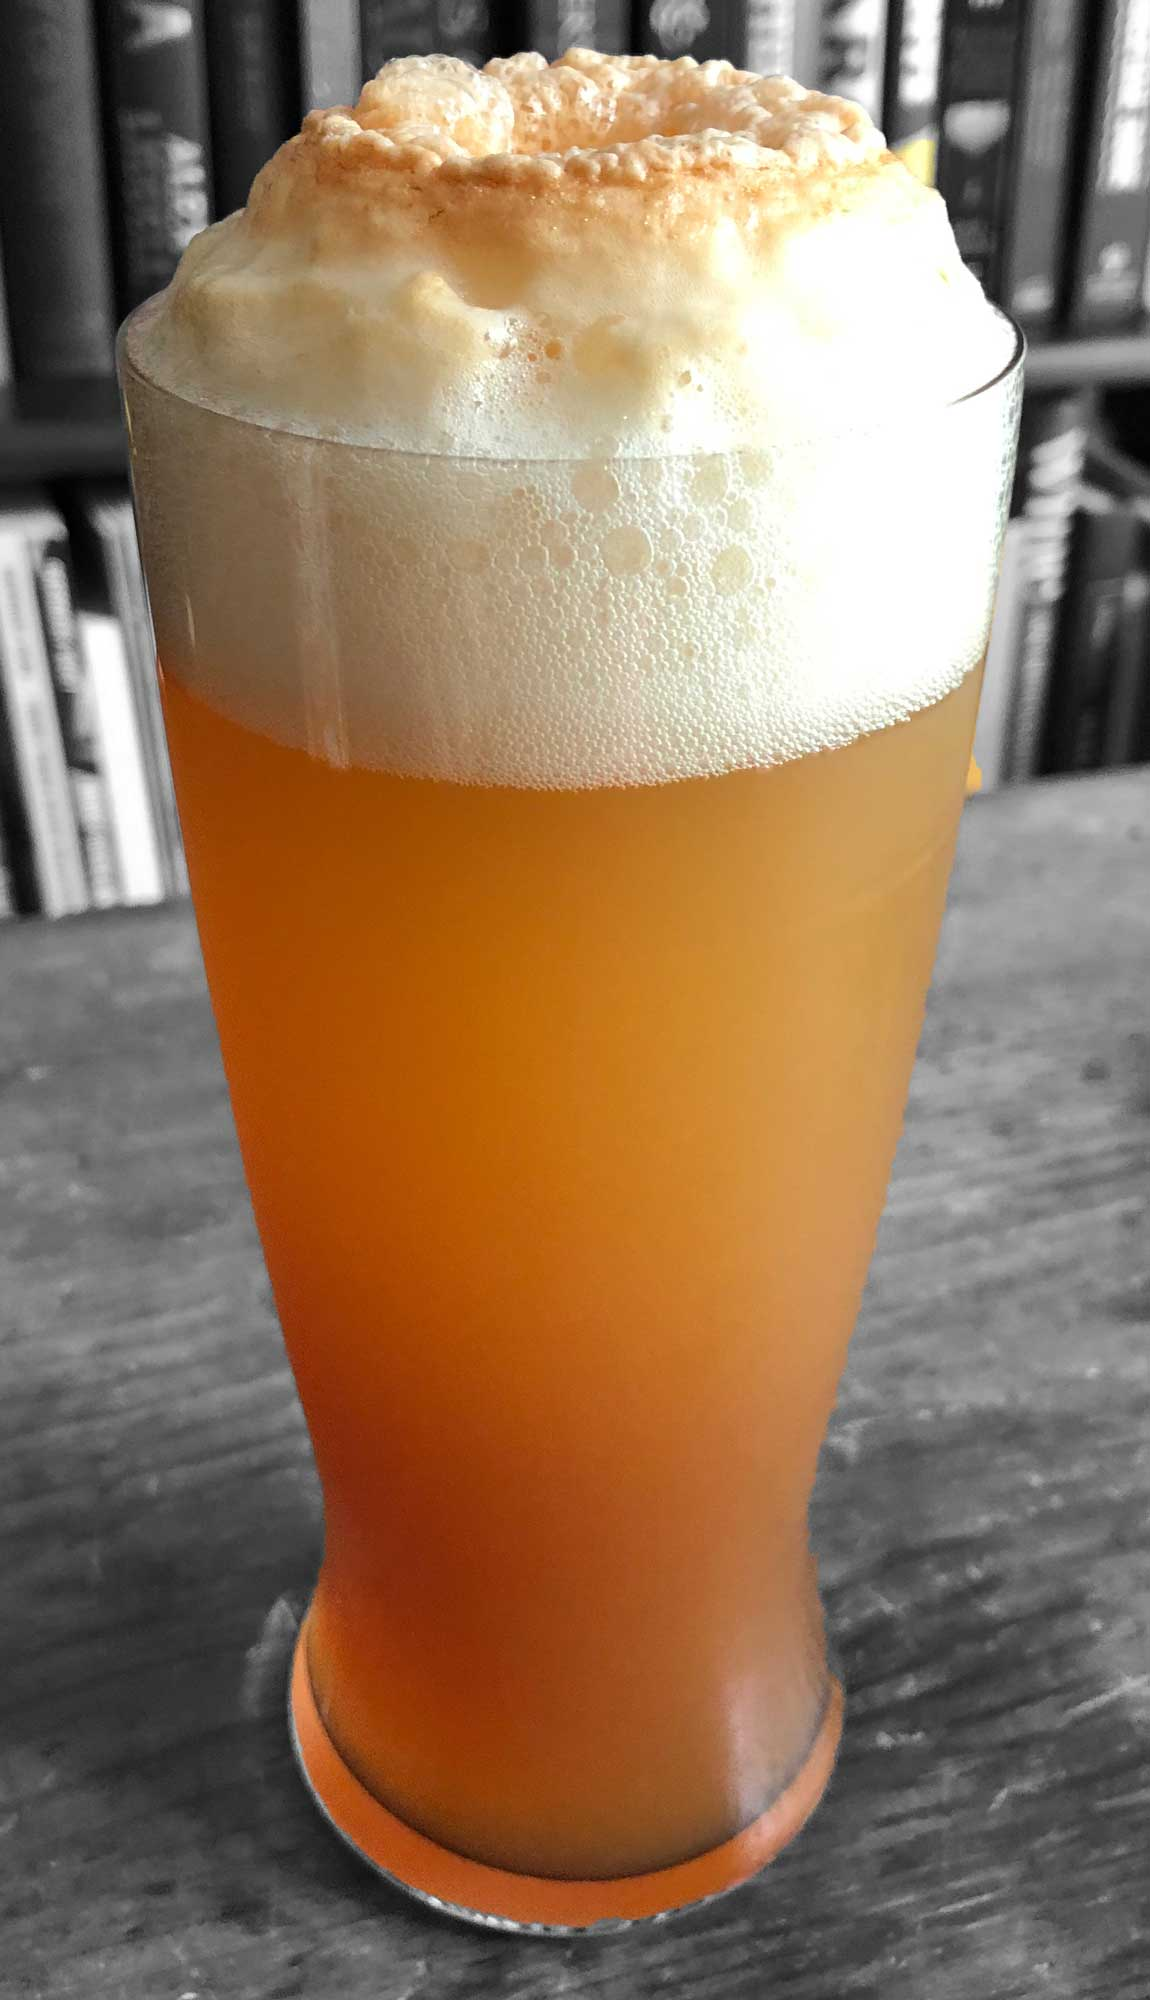 An example of the Draught of Smoke, the mixed drink (cocktail) featuring grapefruit radler or grapefruit or india pale ale, and Amaro Sfumato Rabarbaro; photo by Lee Edwards